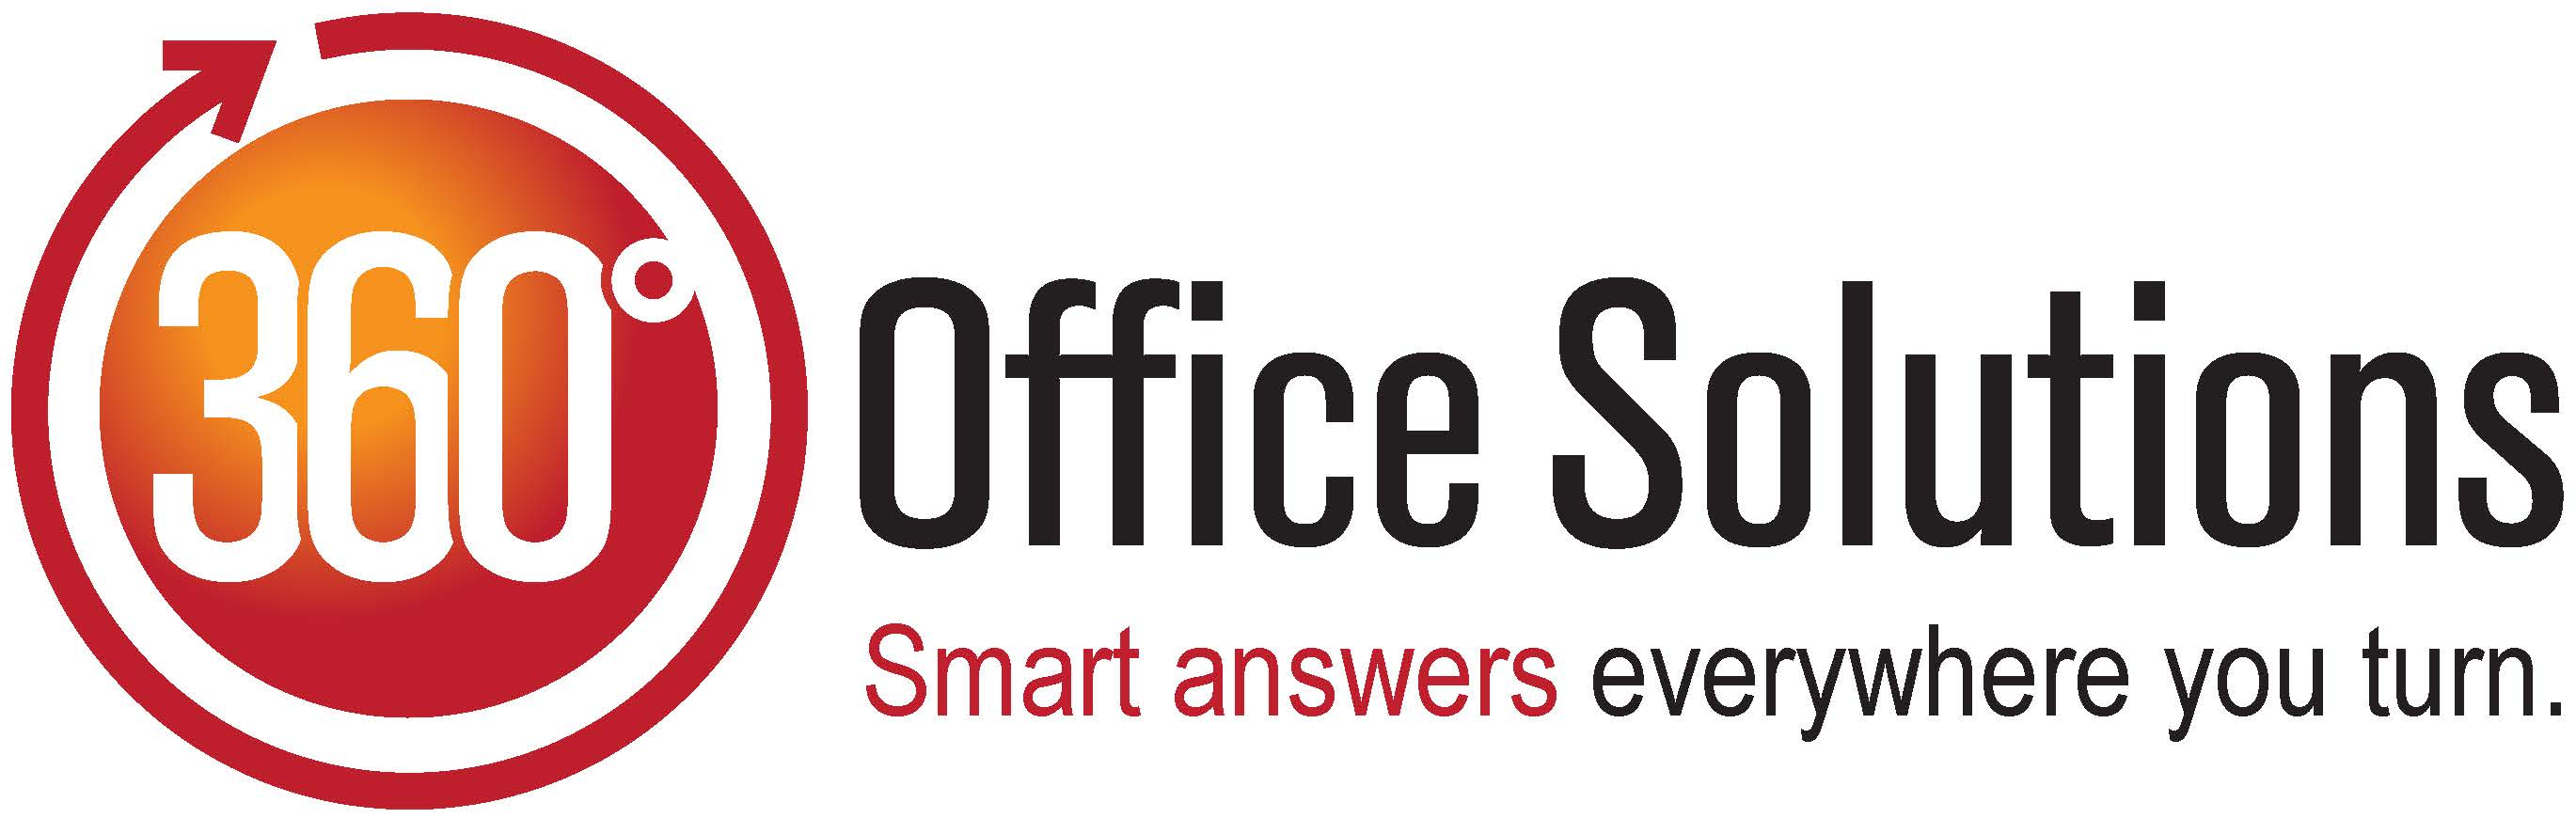 360 Office Solutions Office Supplies Printers And